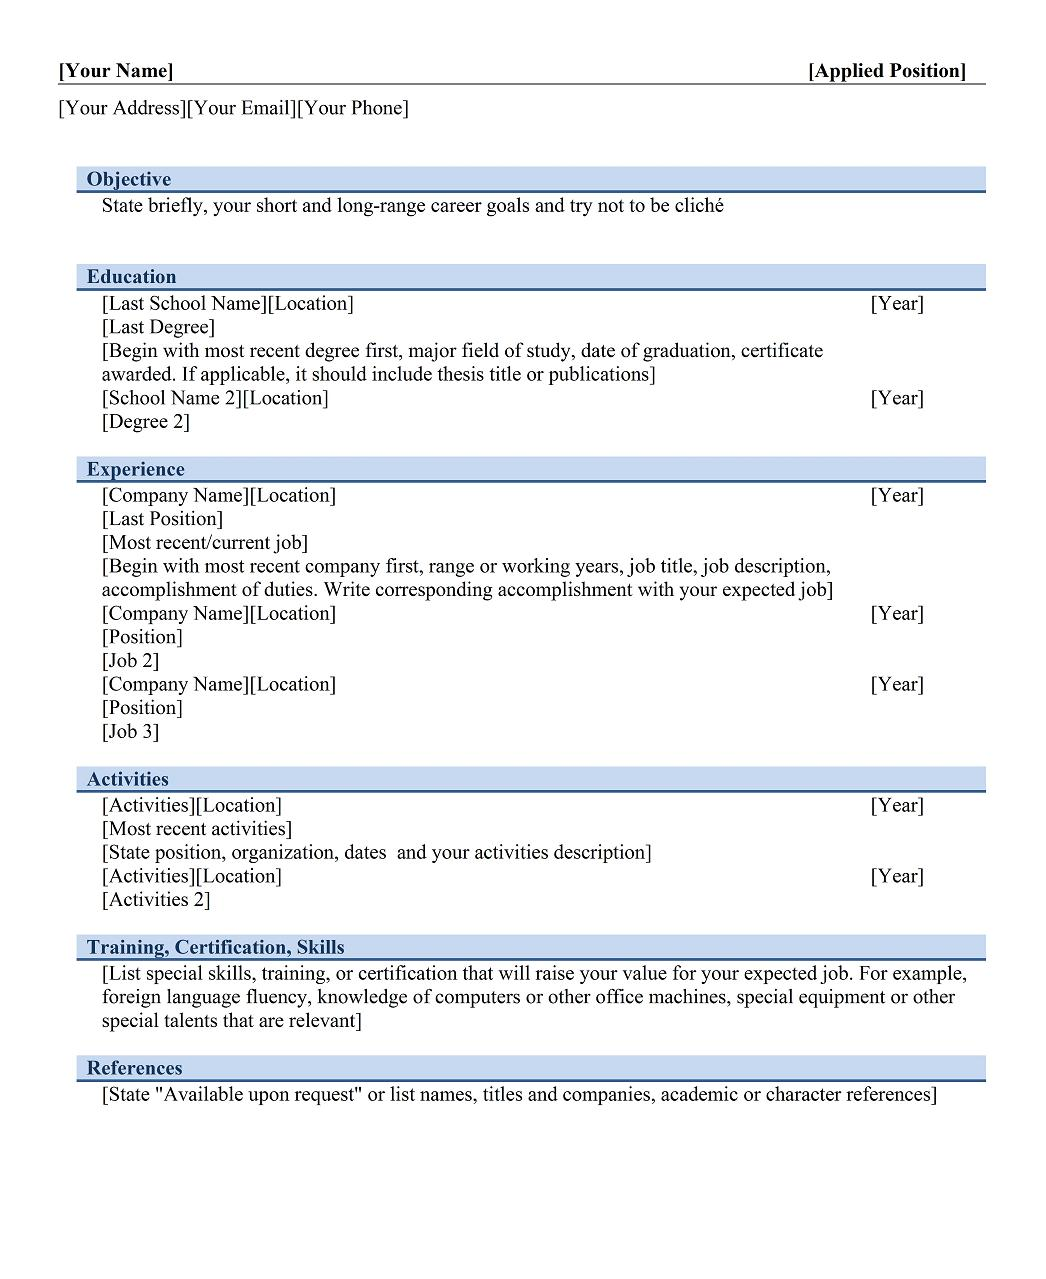 best professional resume layout examples and top resume keywords chronological resume layout 2 doc